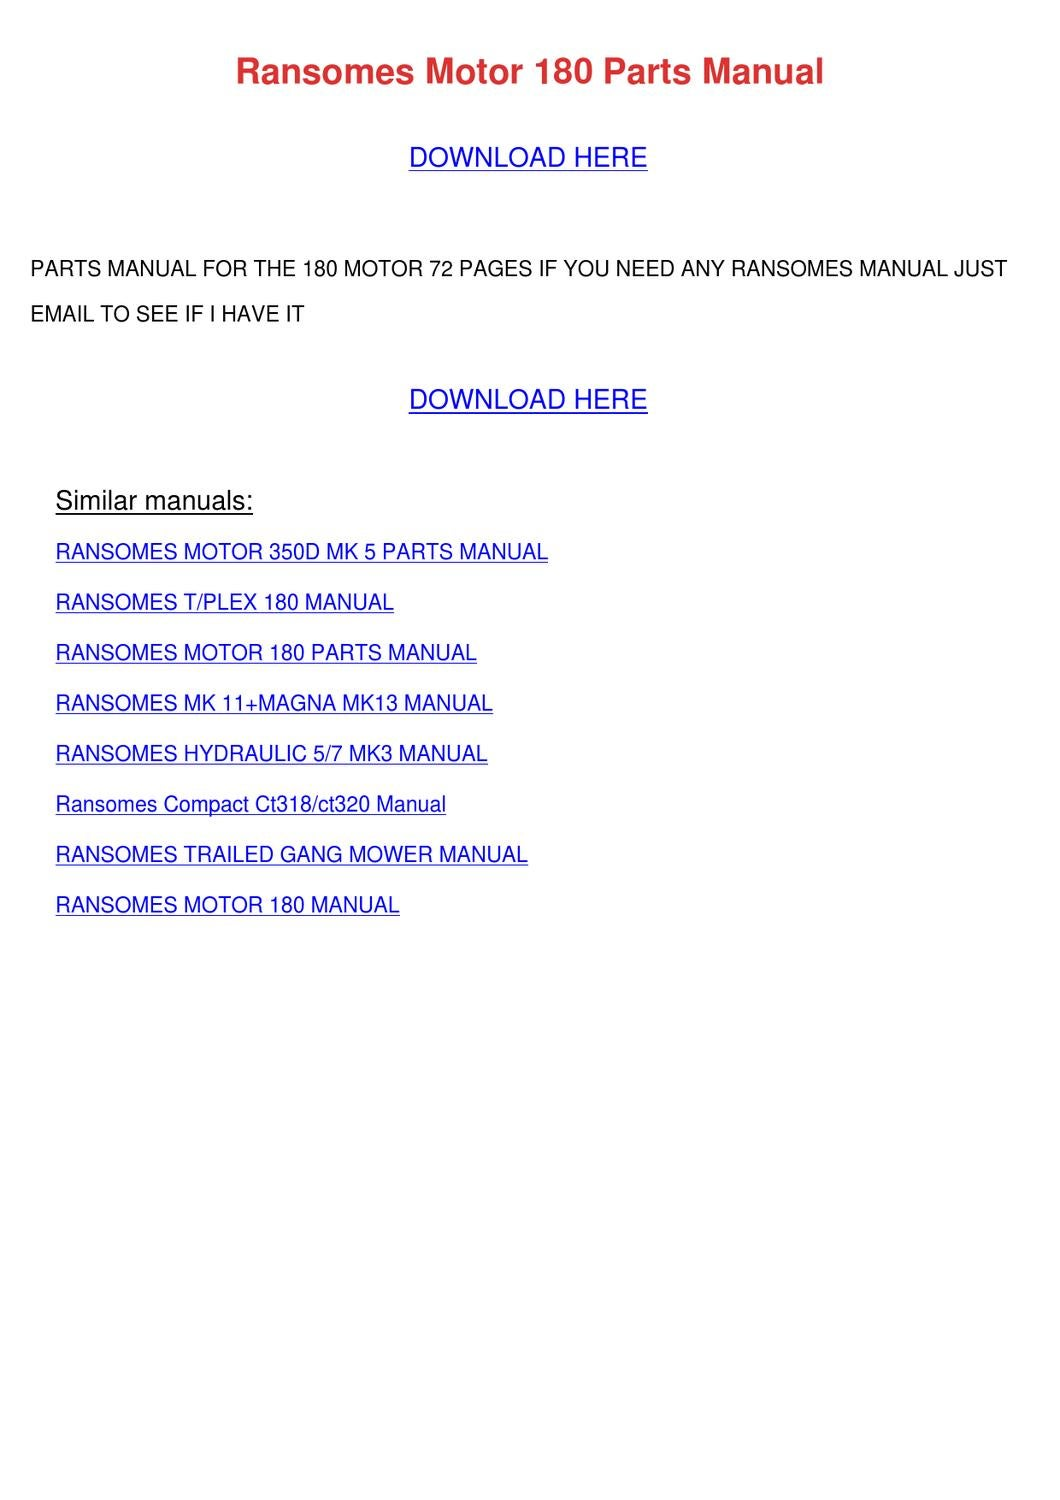 Ransomes Motor 180 Parts Manual by Therese Kibler - issuu